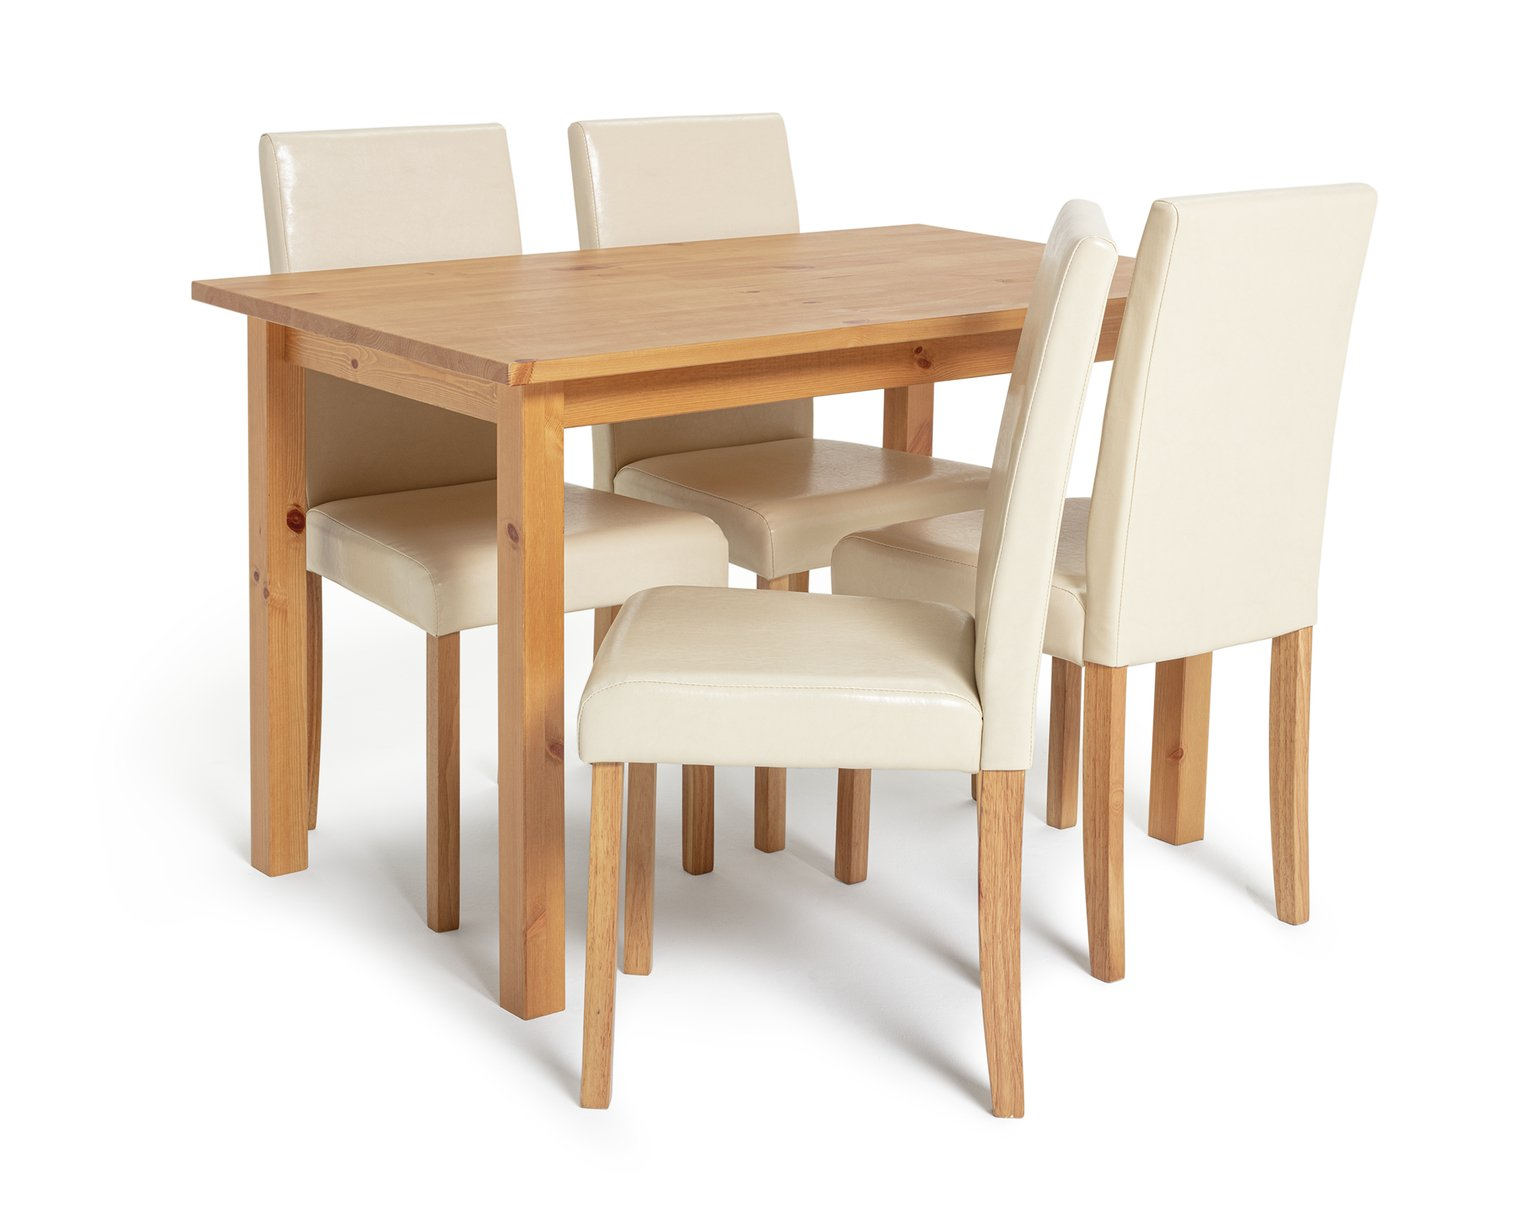 Buy HOME Ashdon Solid Wood Table amp 4 Mid Back Chairs  : 4122063RZ001AWebampw570amph513 from www.argos.co.uk size 570 x 513 jpeg 21kB